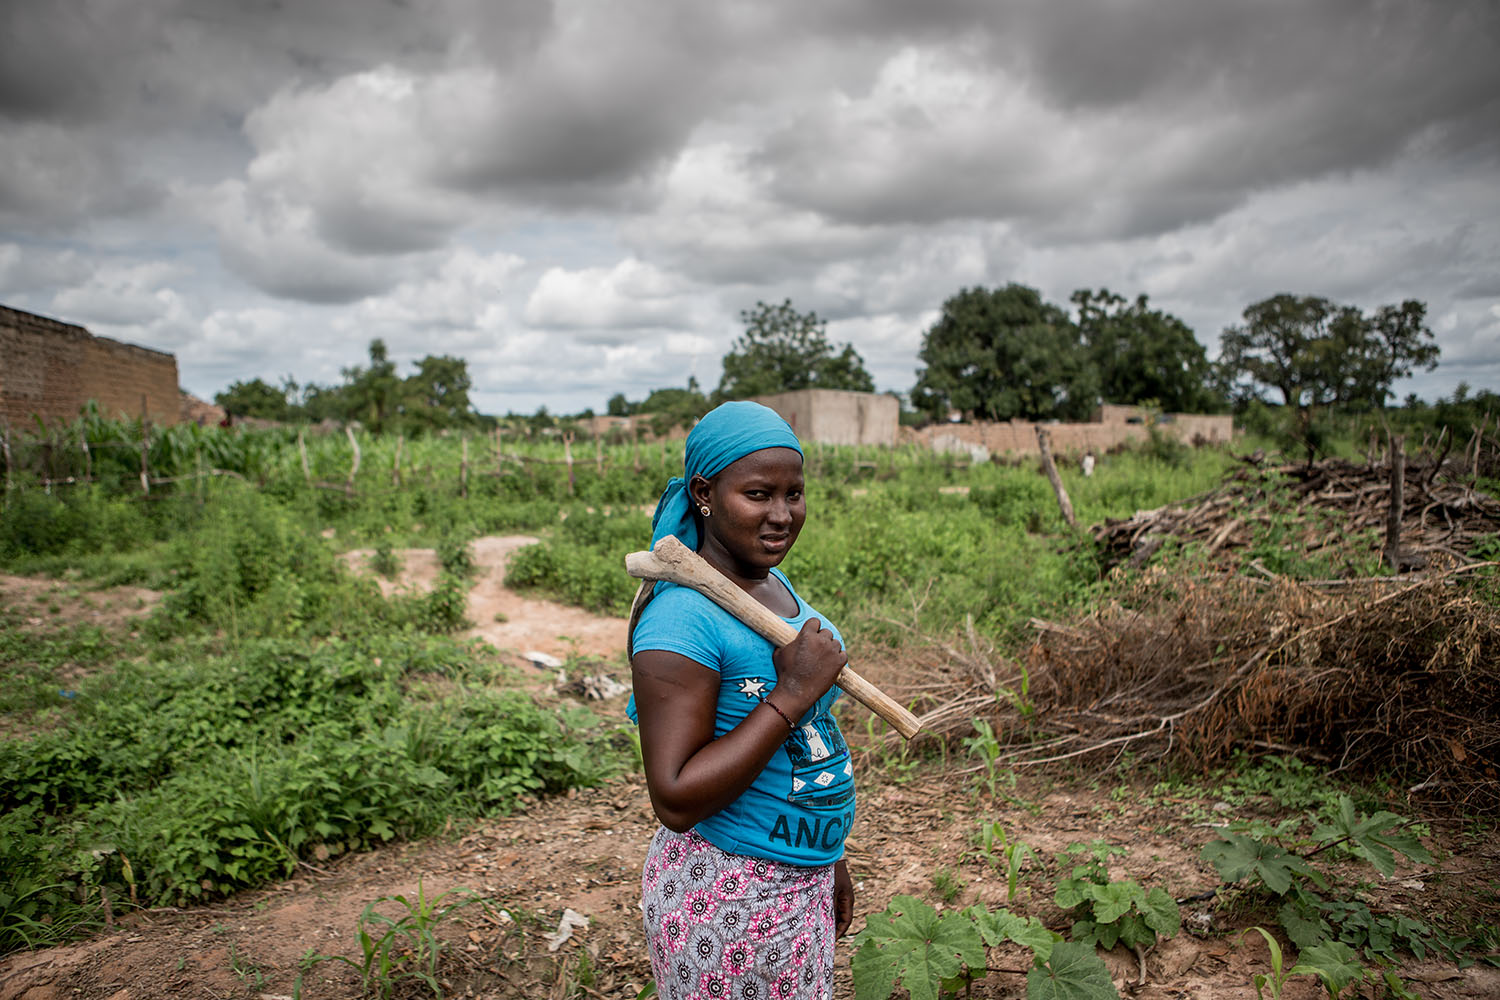 Waraba Doumbia, 16 years (released) ready to go out to the field where she is expected to spend most of her day. Mali's education system remains largely unequal and unfair. Poverty, child labor, the multiple crisis, displacement, gender issues and socio